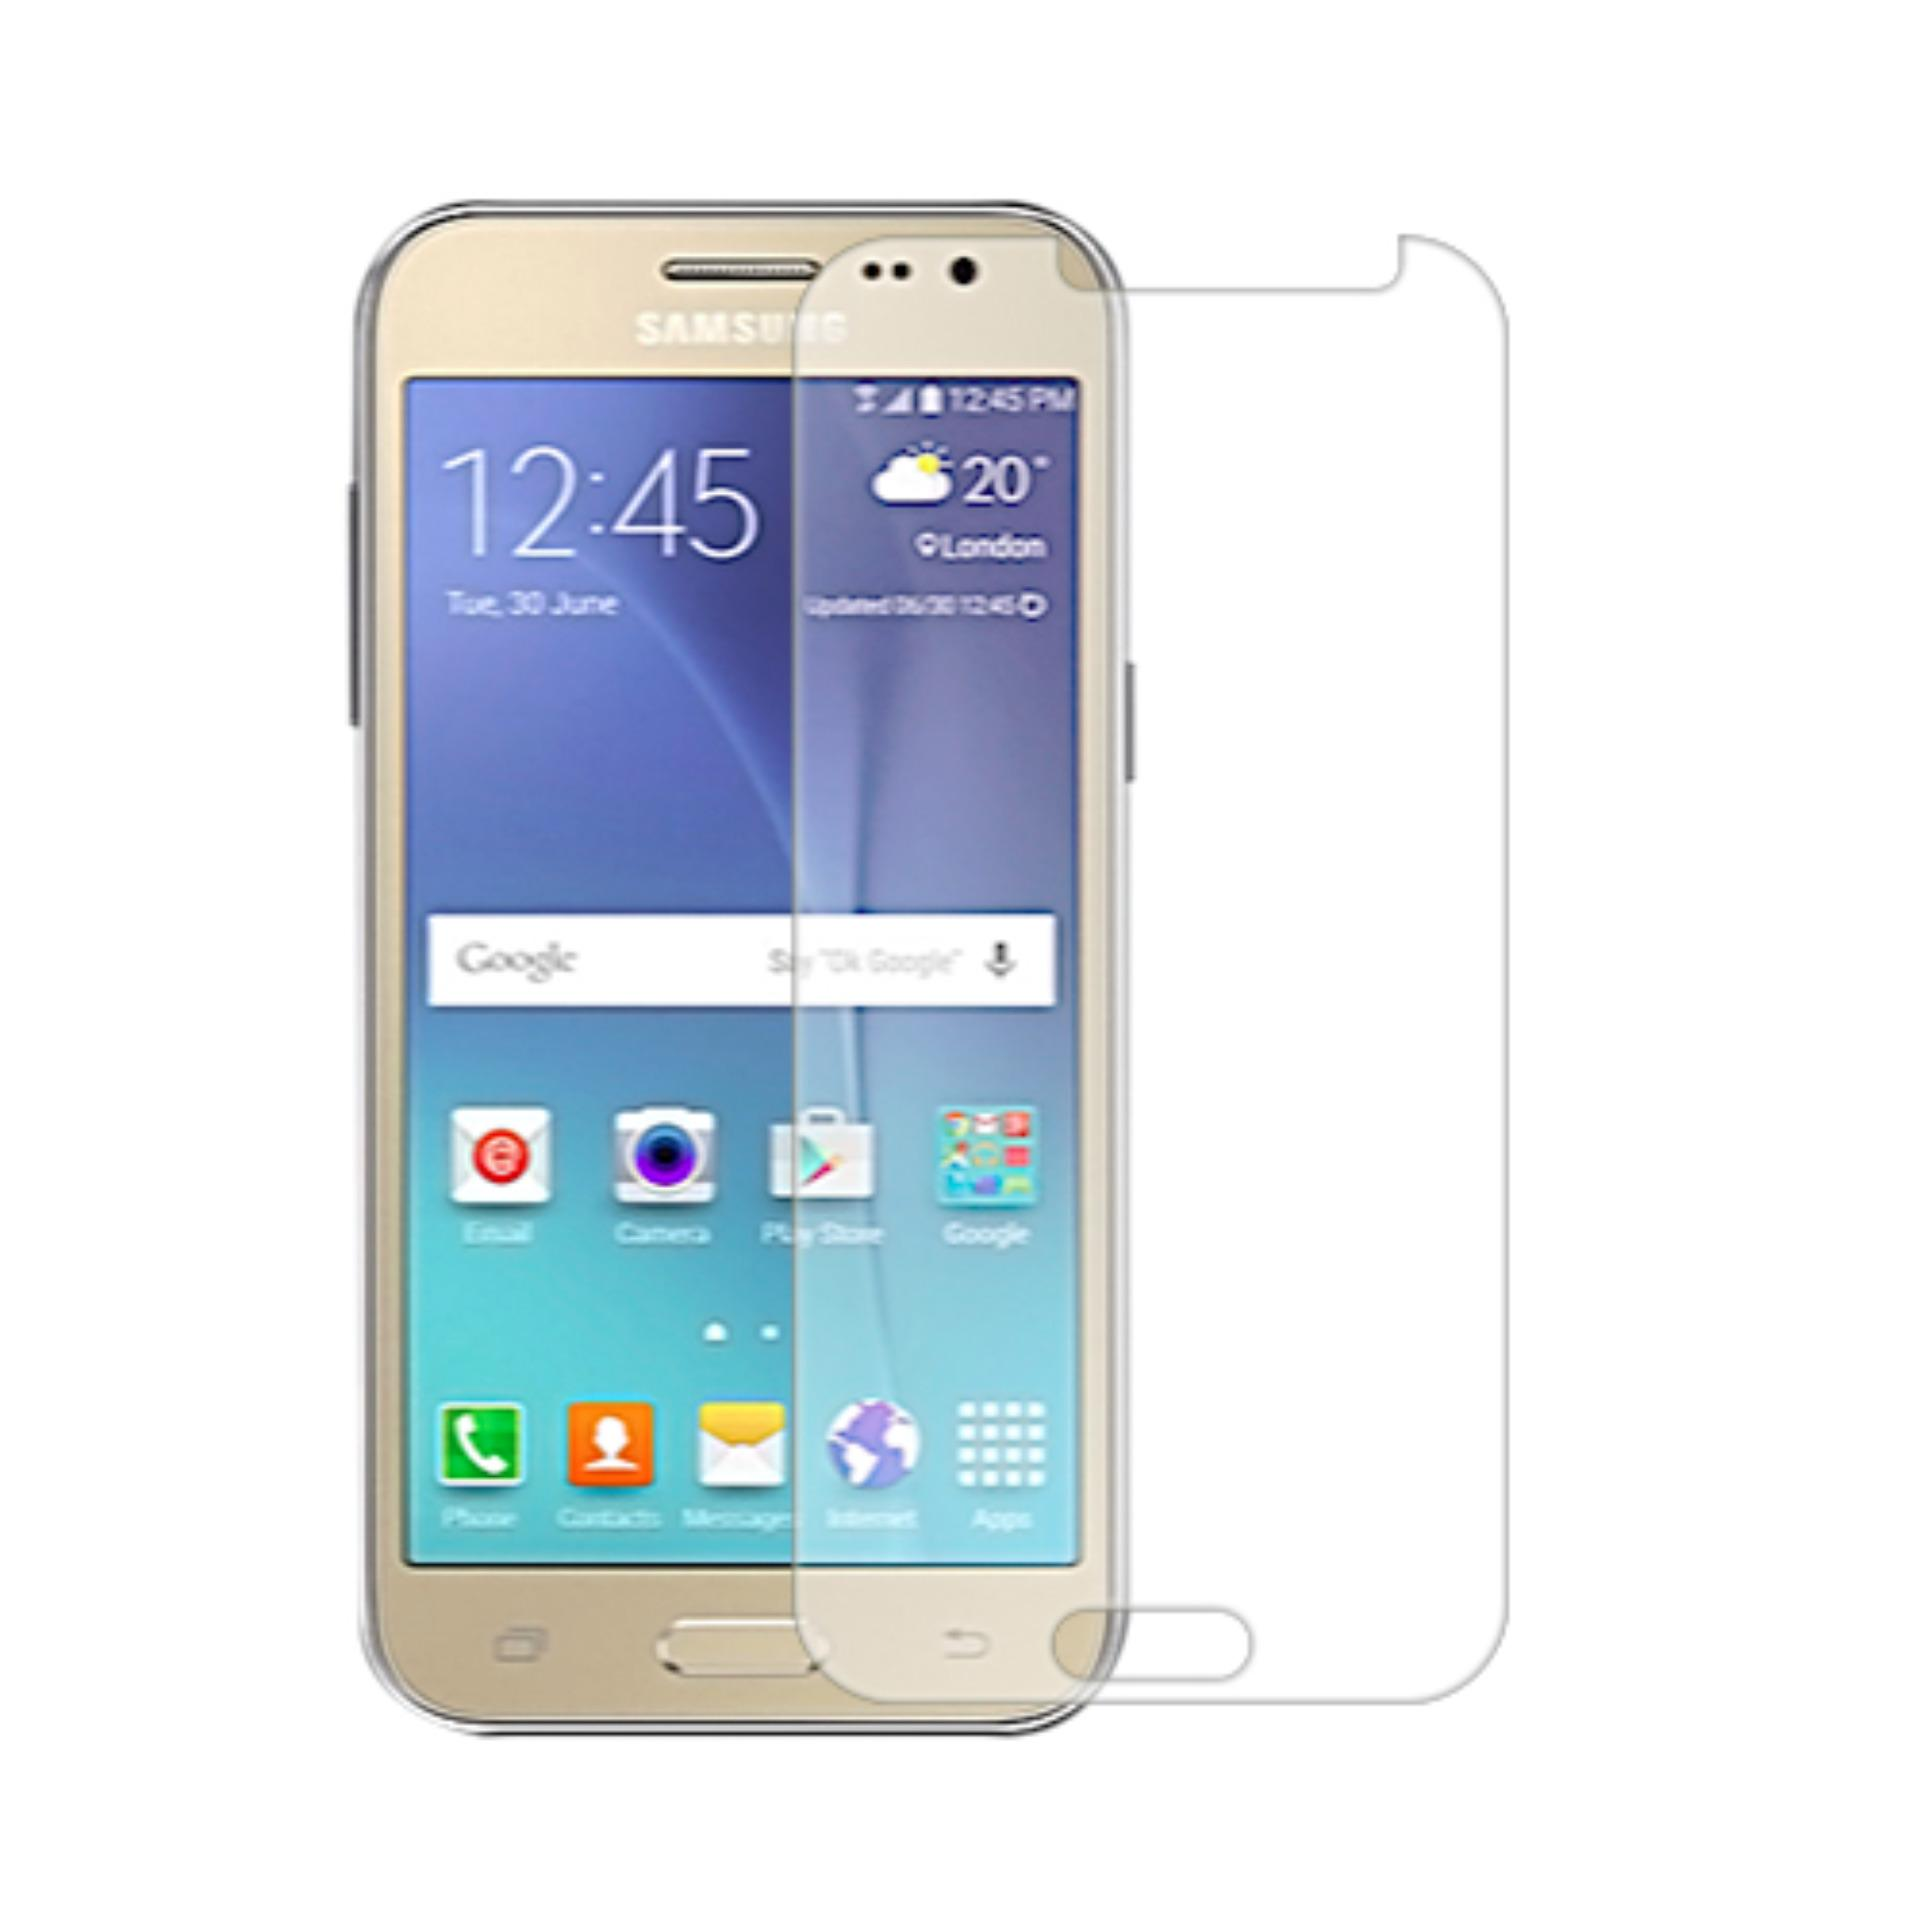 Vn Samsung Galaxy J2 2015 J200 4G LTE Duos Tempered Glass